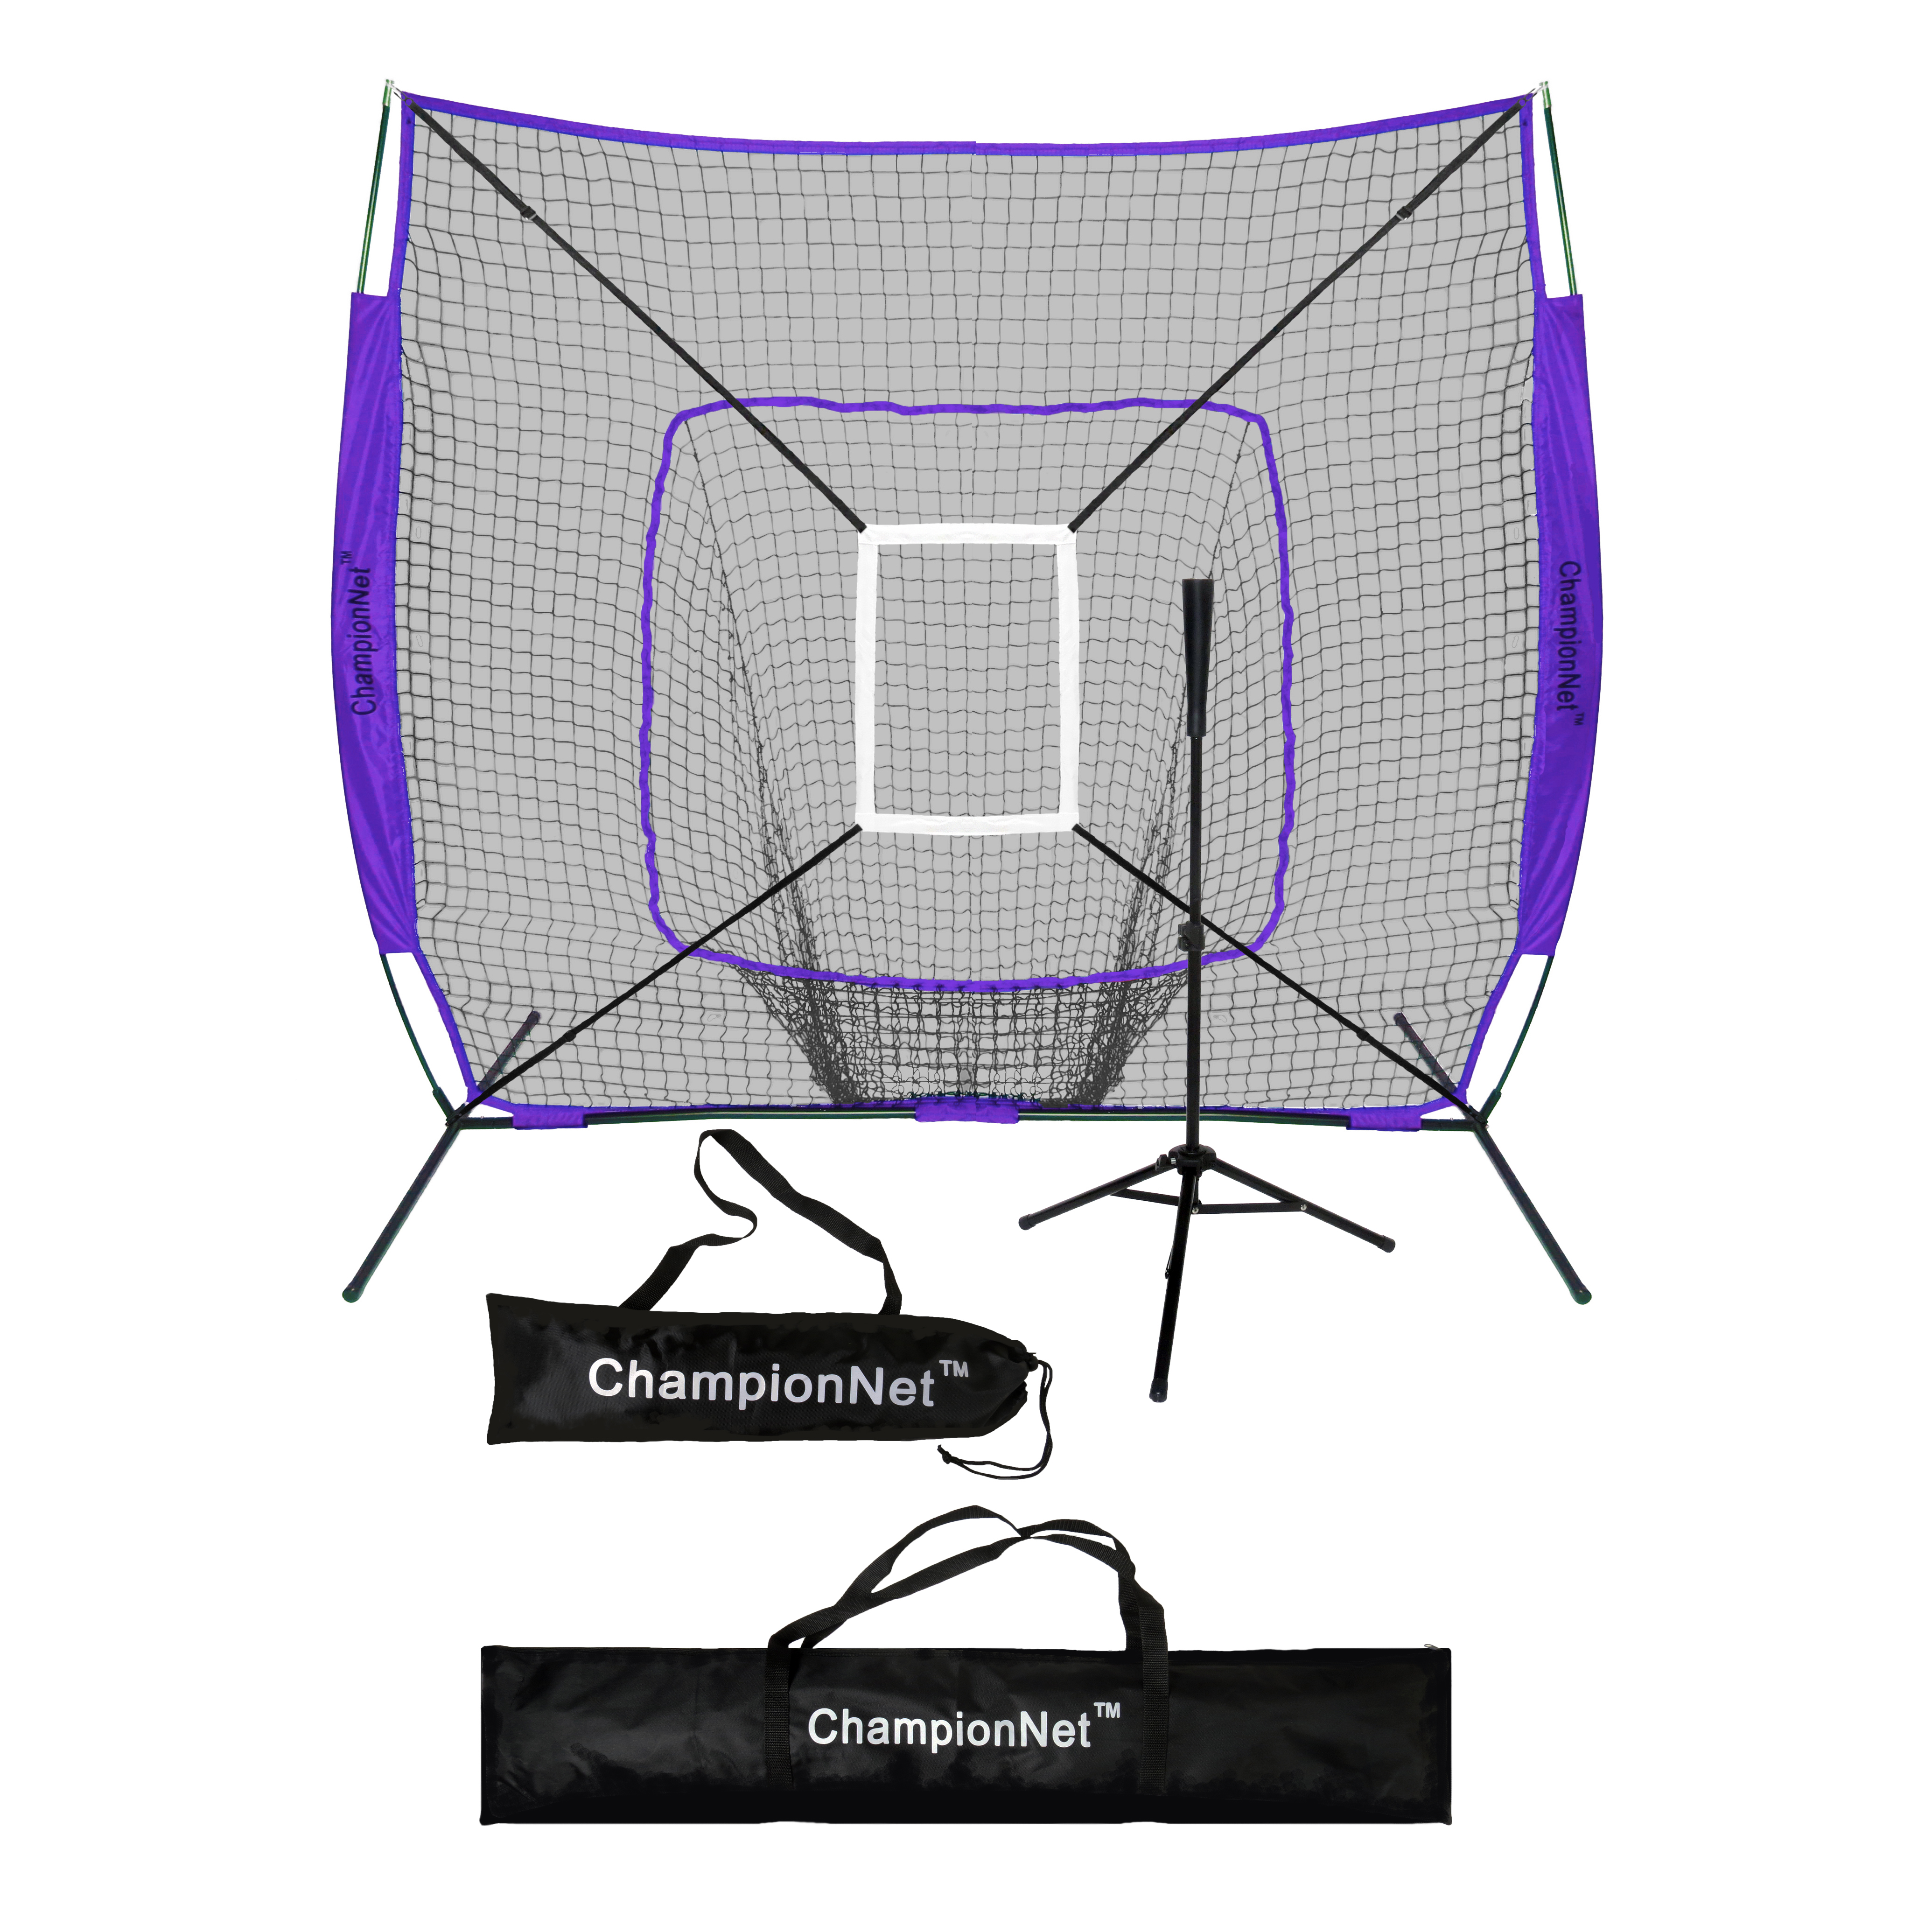 ChampionNet 7x7 Baseball/Softball Training Hitting Net & Frame Power Bow Style Net w/ Carry Bag + Batting Tee + Strike Zone Target Attachment - PURPLE